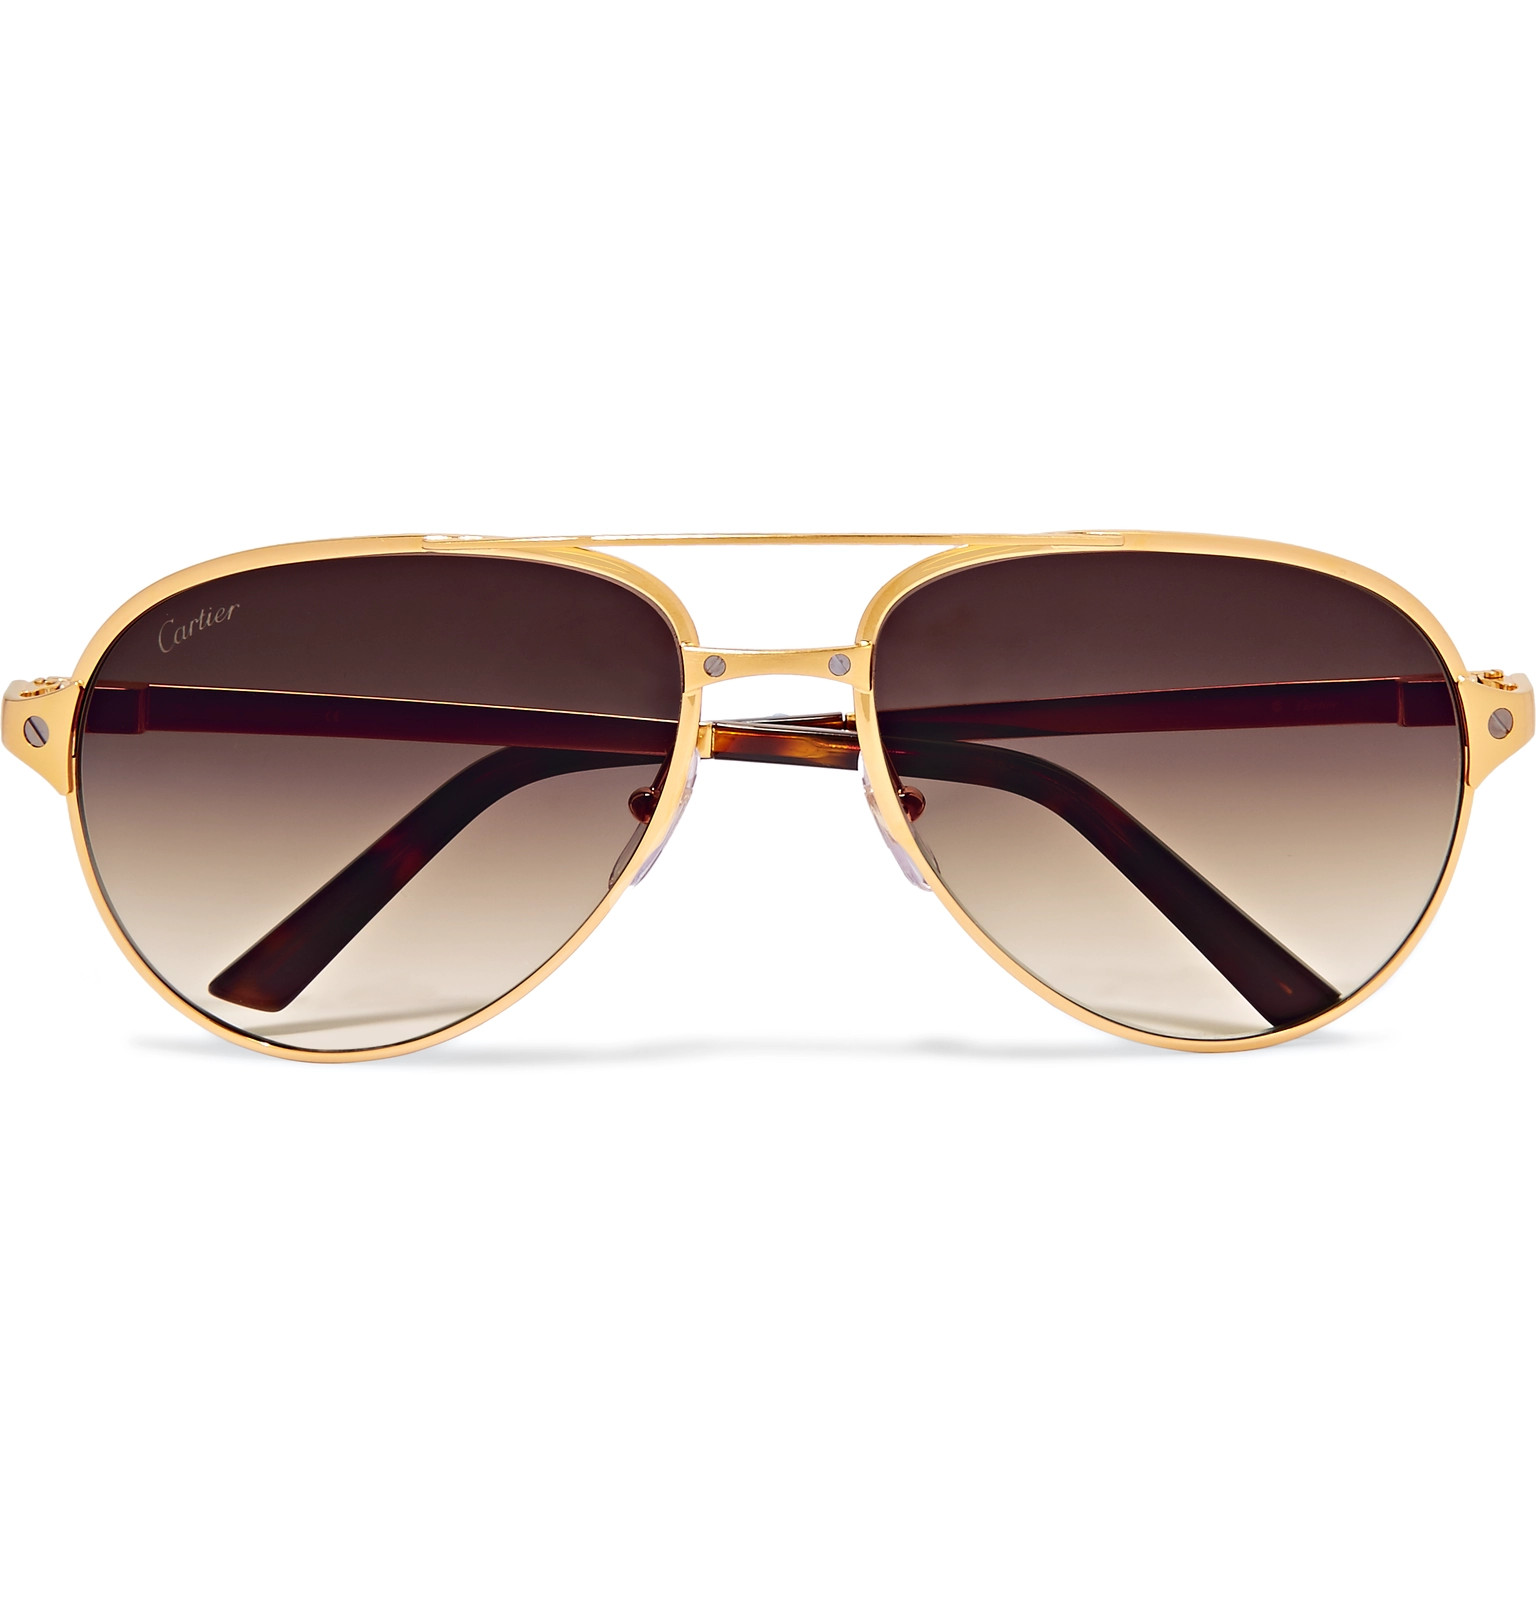 Cartier Eyewear - Santos de Cartier Aviator-Style Leather-Trimmed ...